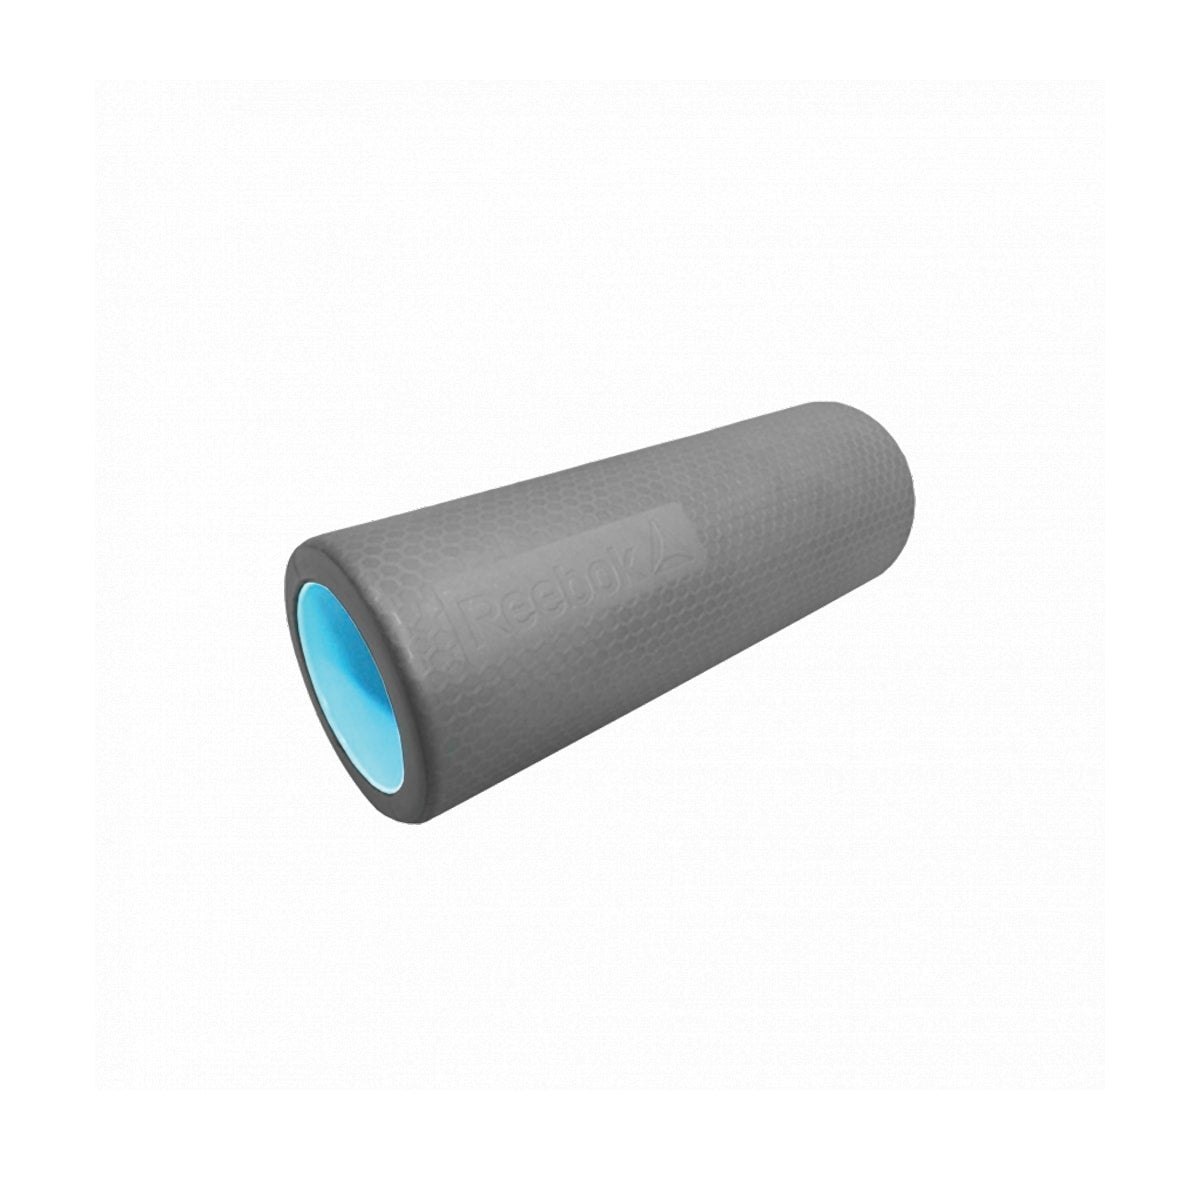 Reebok Tube Foam Roller, easy to clean, non-slip surface, solid plastic core, dimensions HWD: 41x46x61cm, colour grey